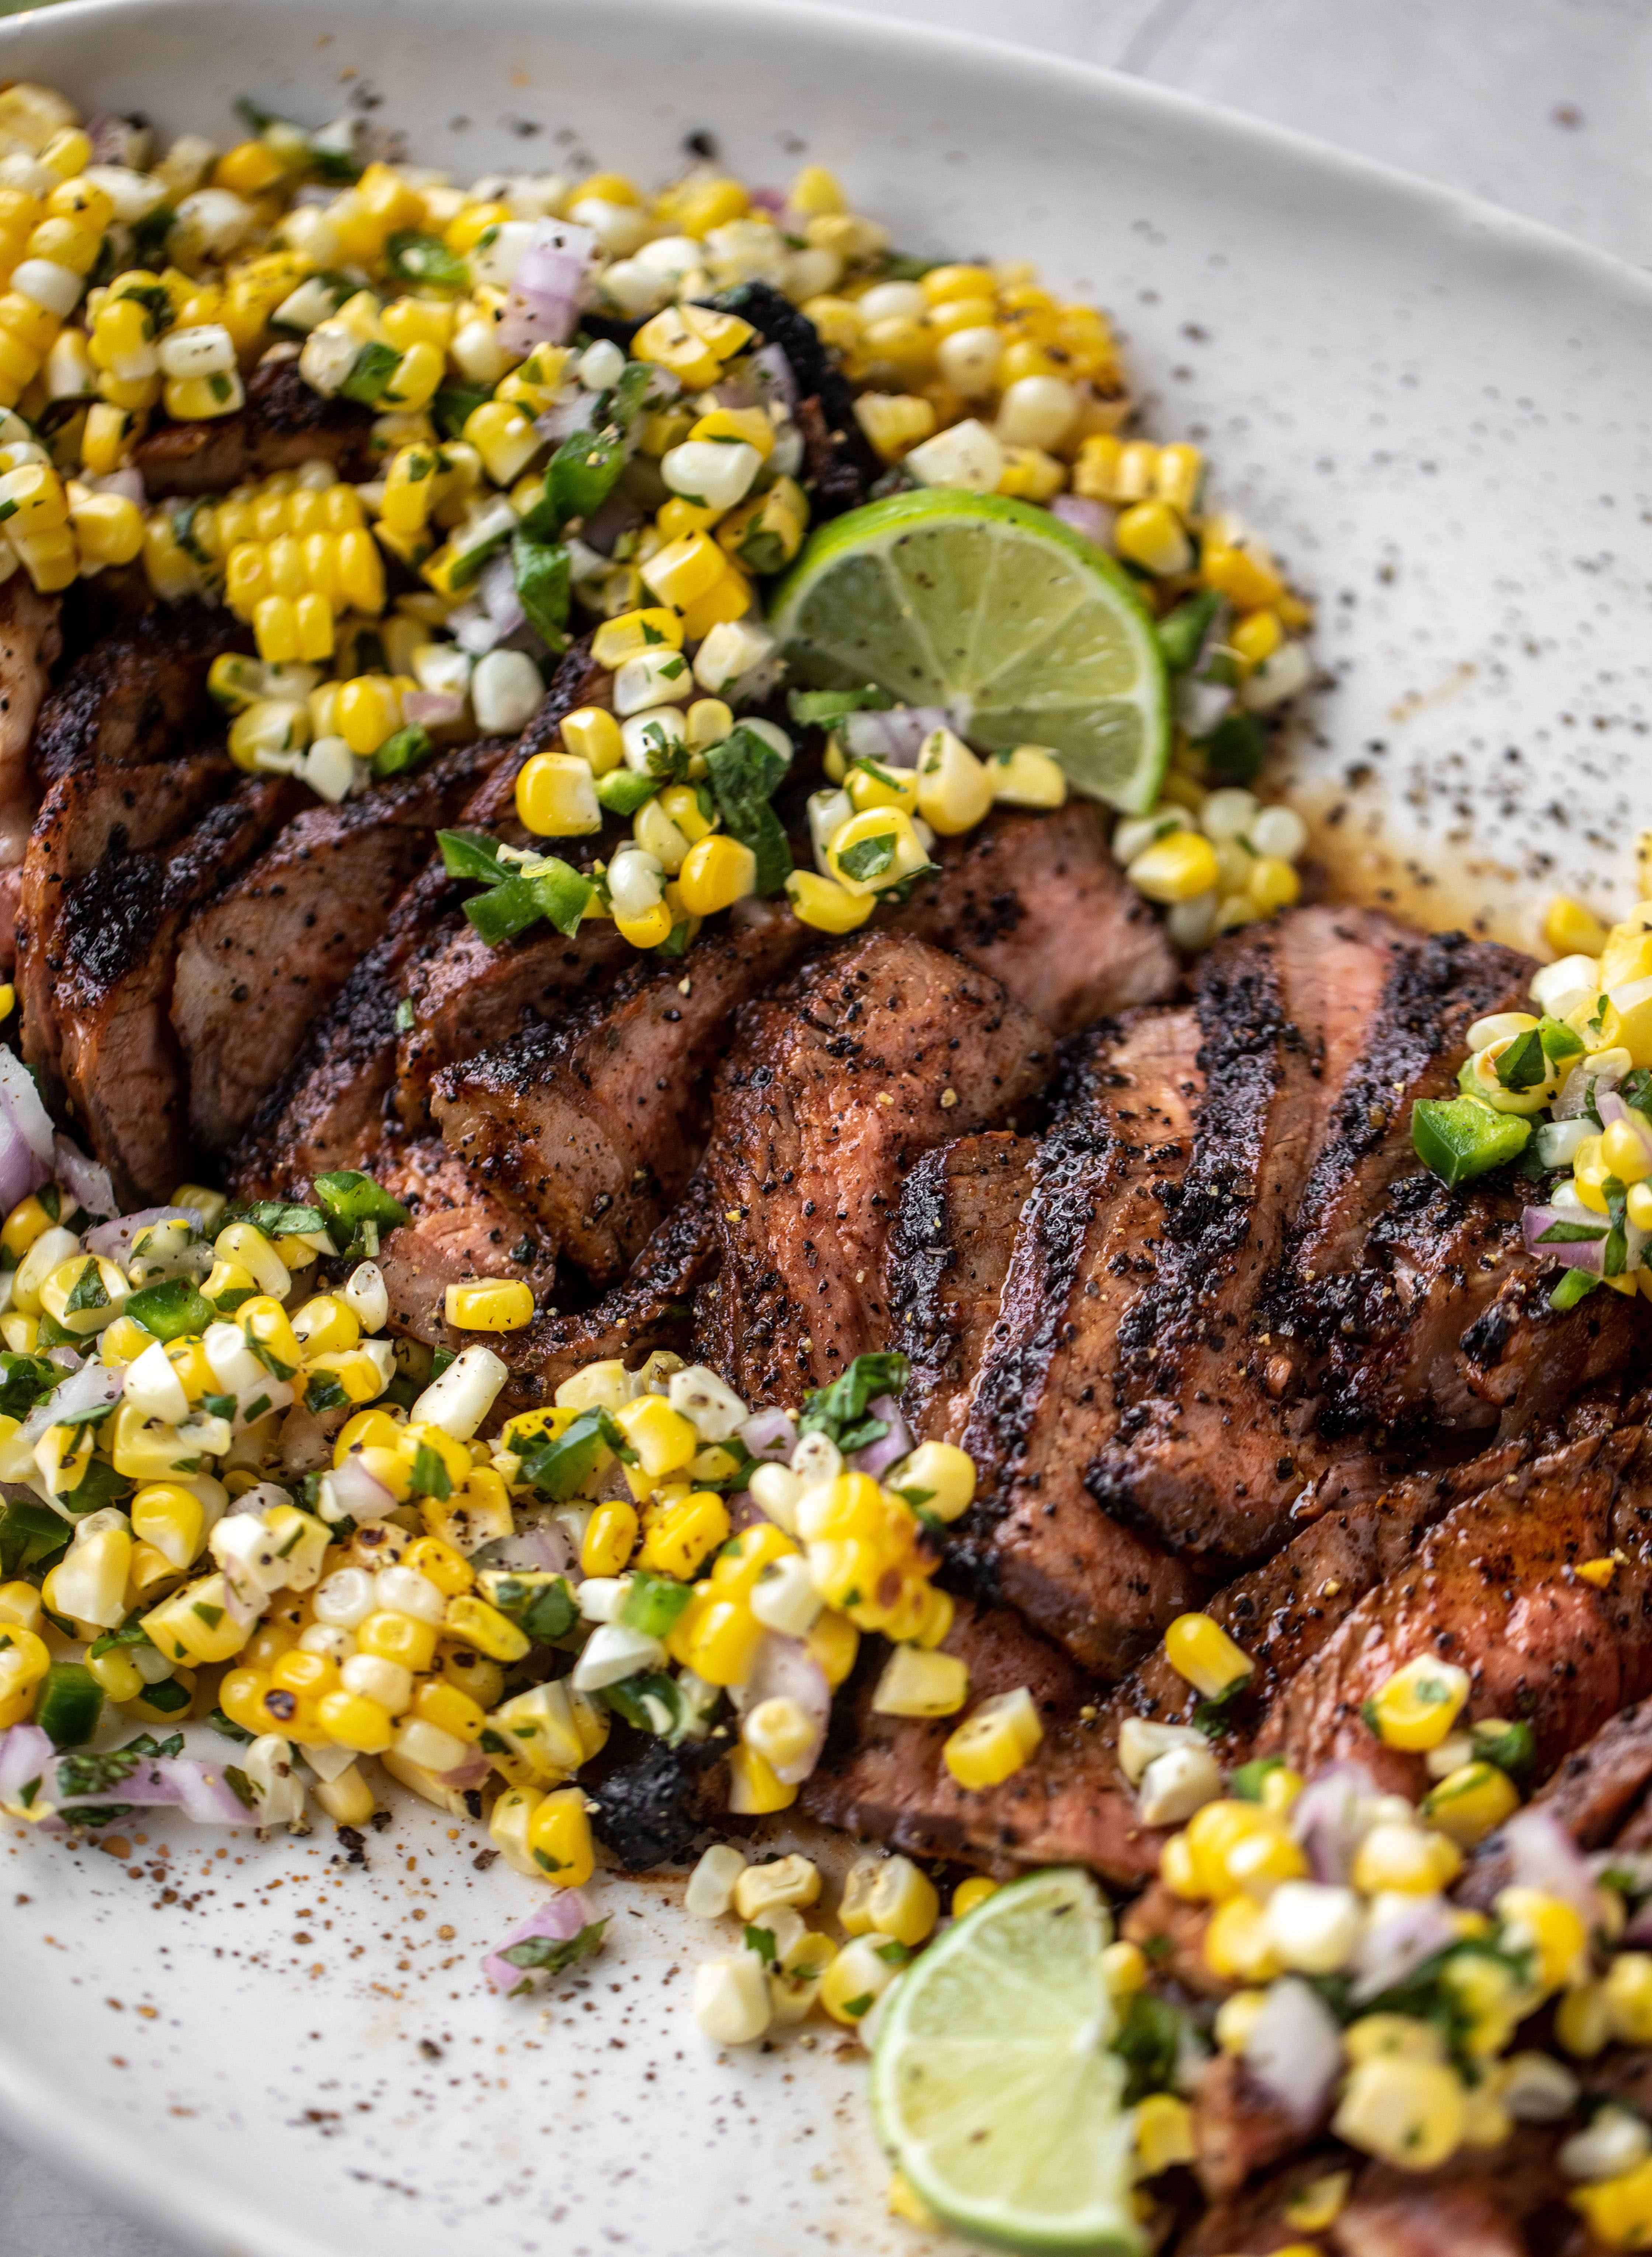 This coffee crusted steak is incredibly flavorful! Topped with a fresh and bright herbed corn salsa, it's the perfect meal to kick off summer.